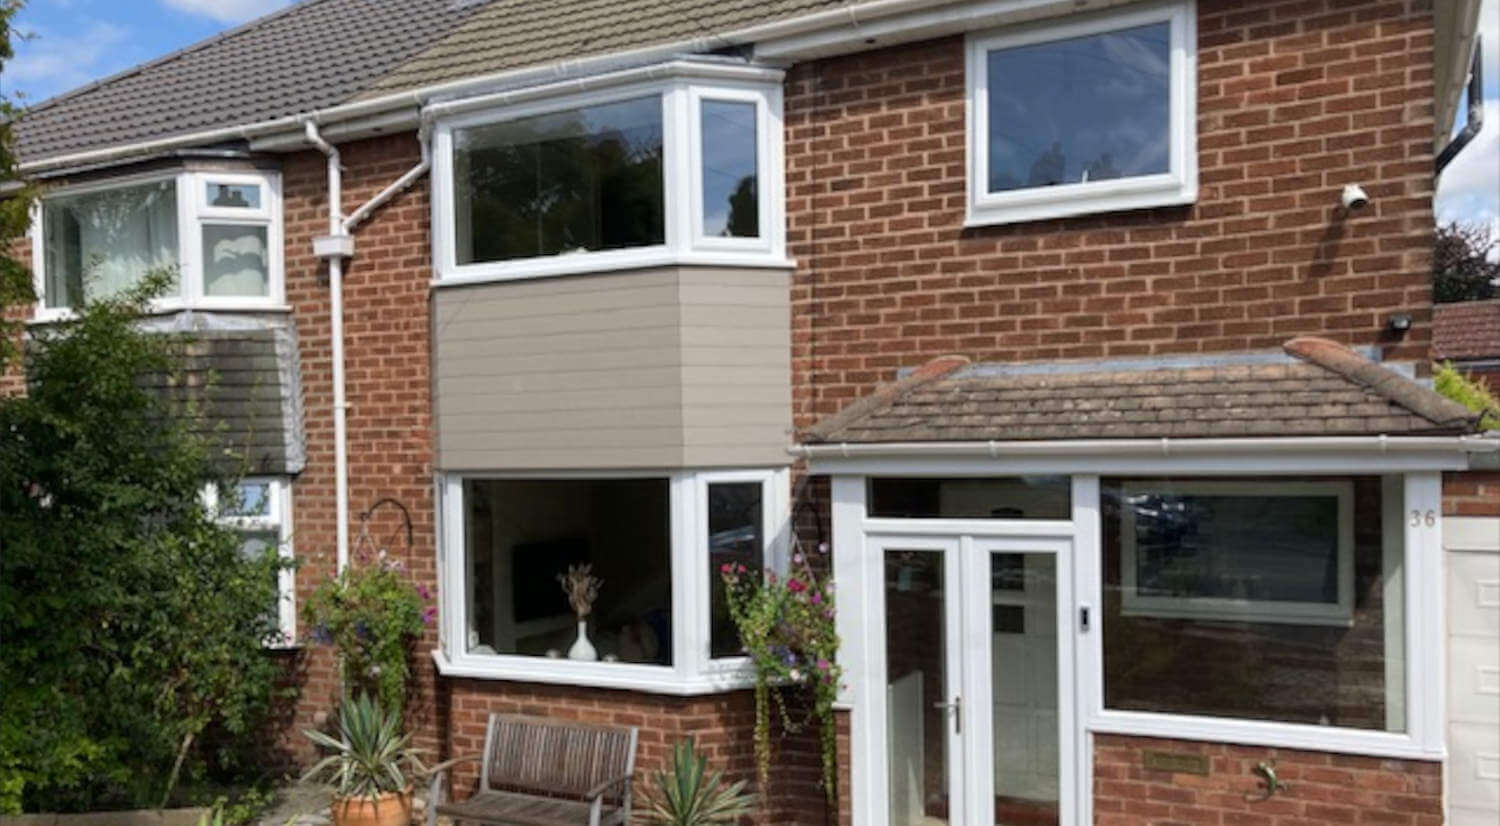 front of house featuring composite cladding on bay windows